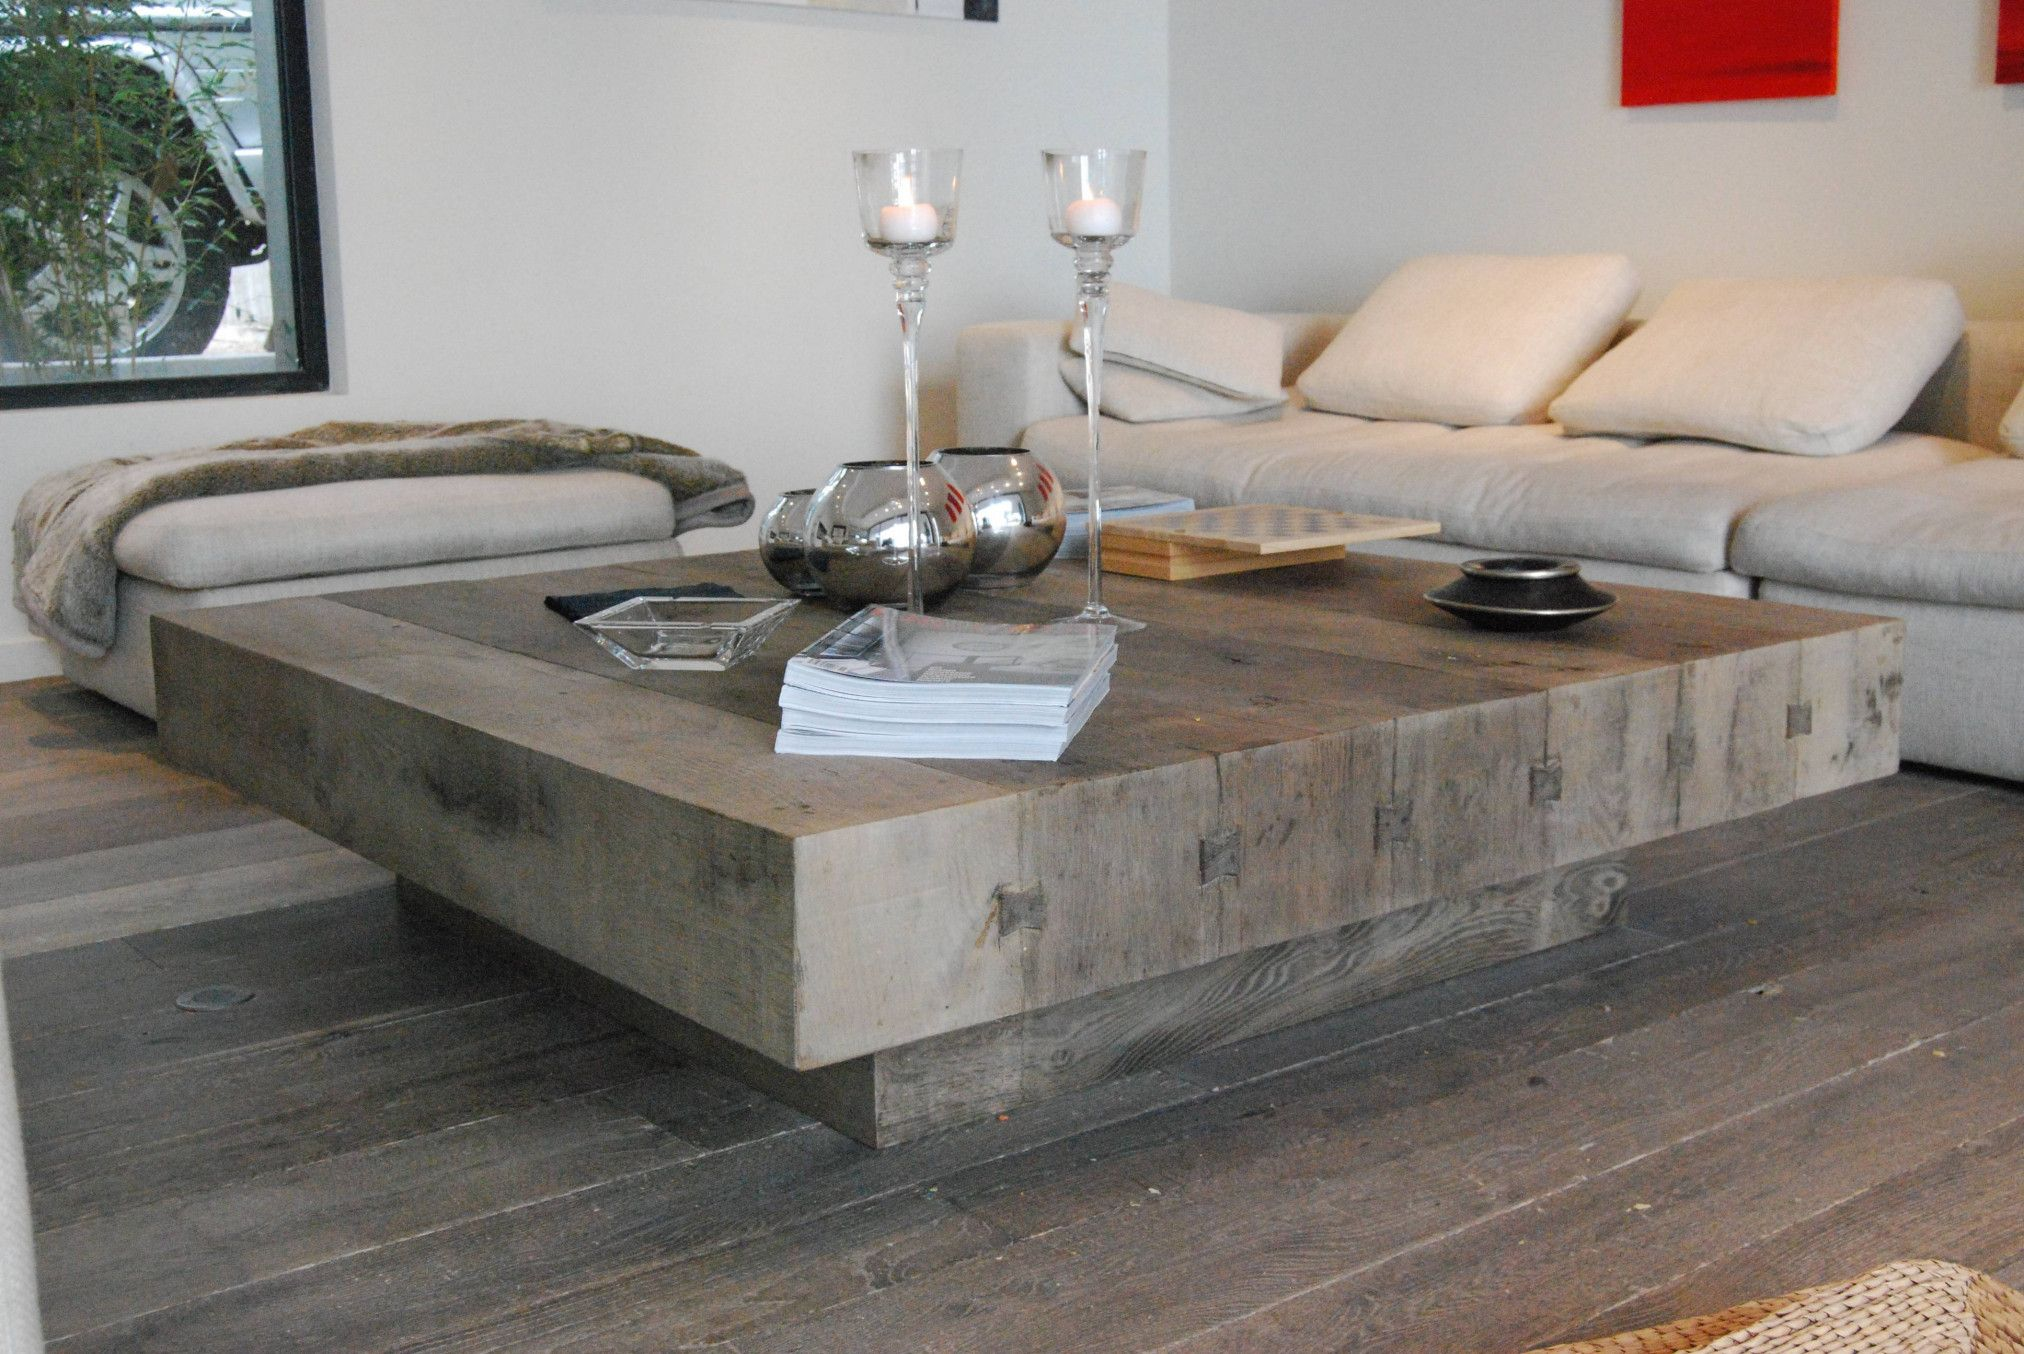 77 Square Large Coffee Table Best Office Furniture Check More At Http Www Buzzfolders Com Square Large Coffee Table Coffee Table Large Coffee Tables Table [ 1354 x 2024 Pixel ]